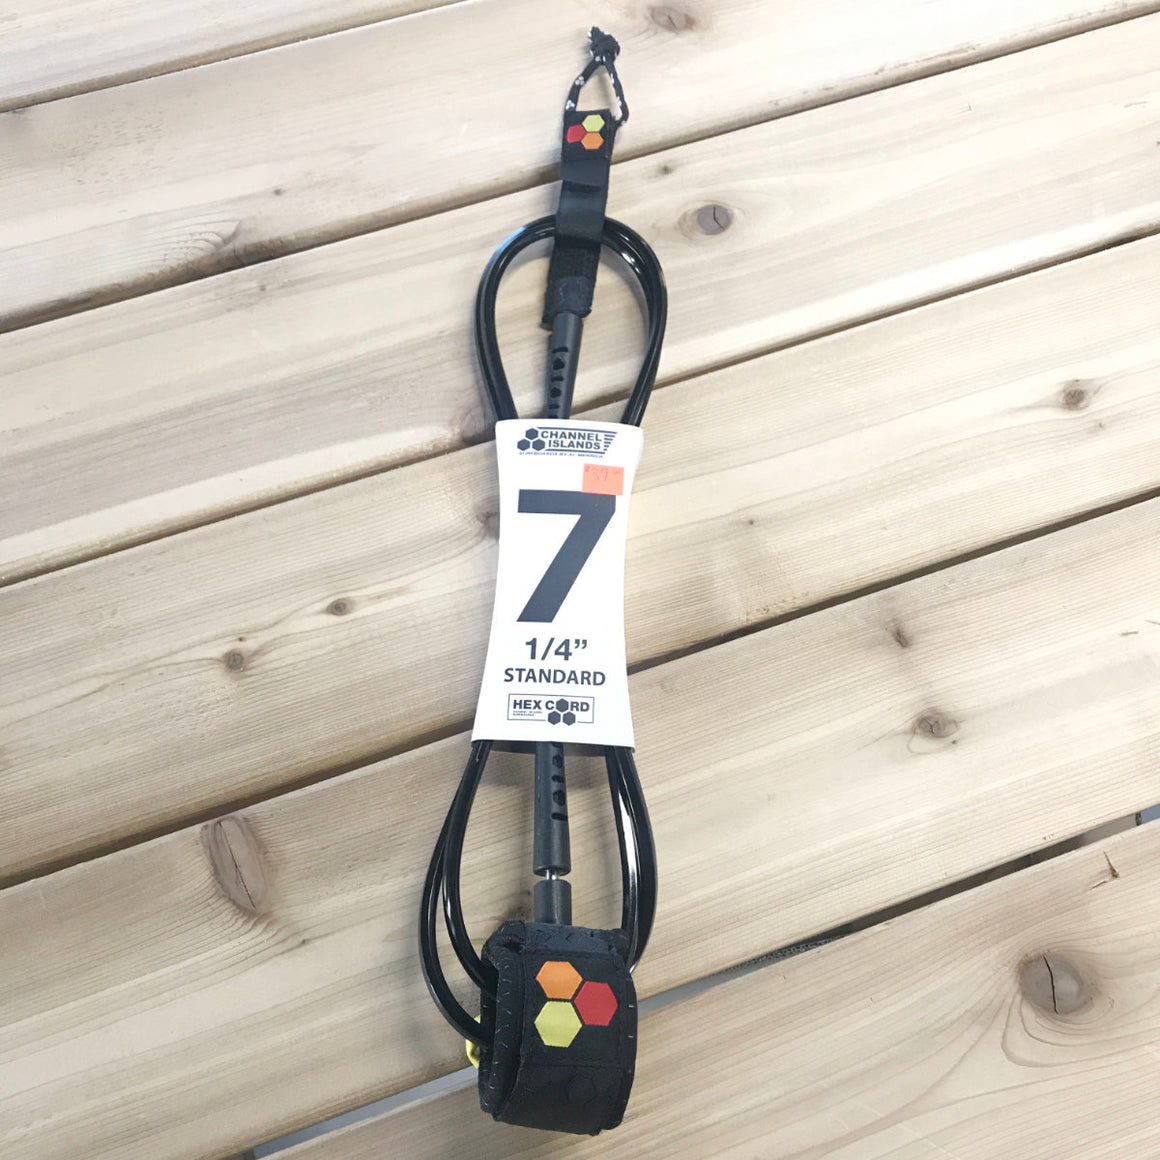 Leash - Channel Islands - 7' 1/4 Hex Cord Standard - Black (Red/Orange/Yellow Hex)